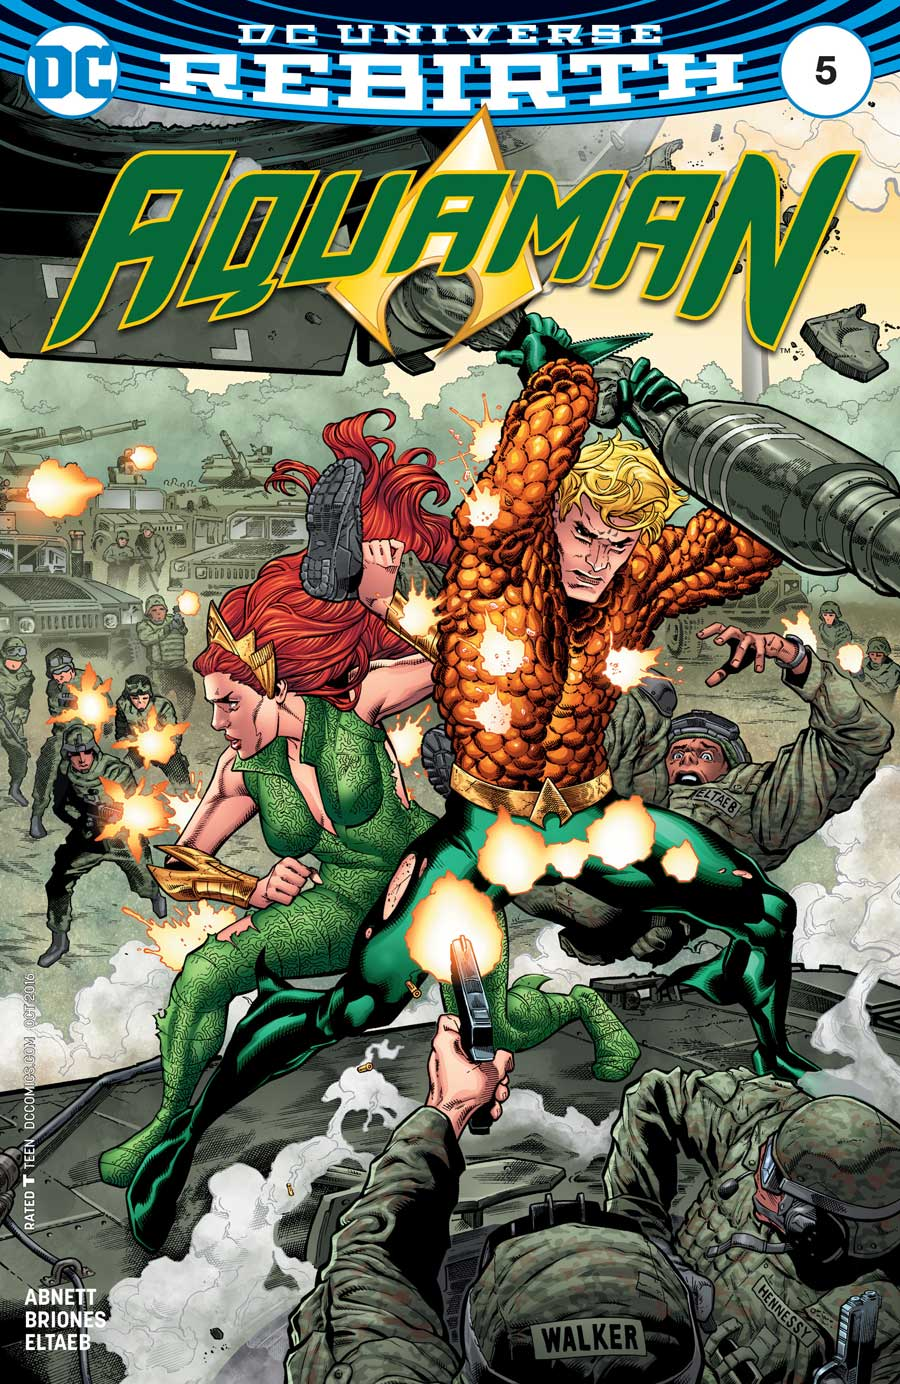 Aquaman #5 by Dan Abnett and Philippe Briones